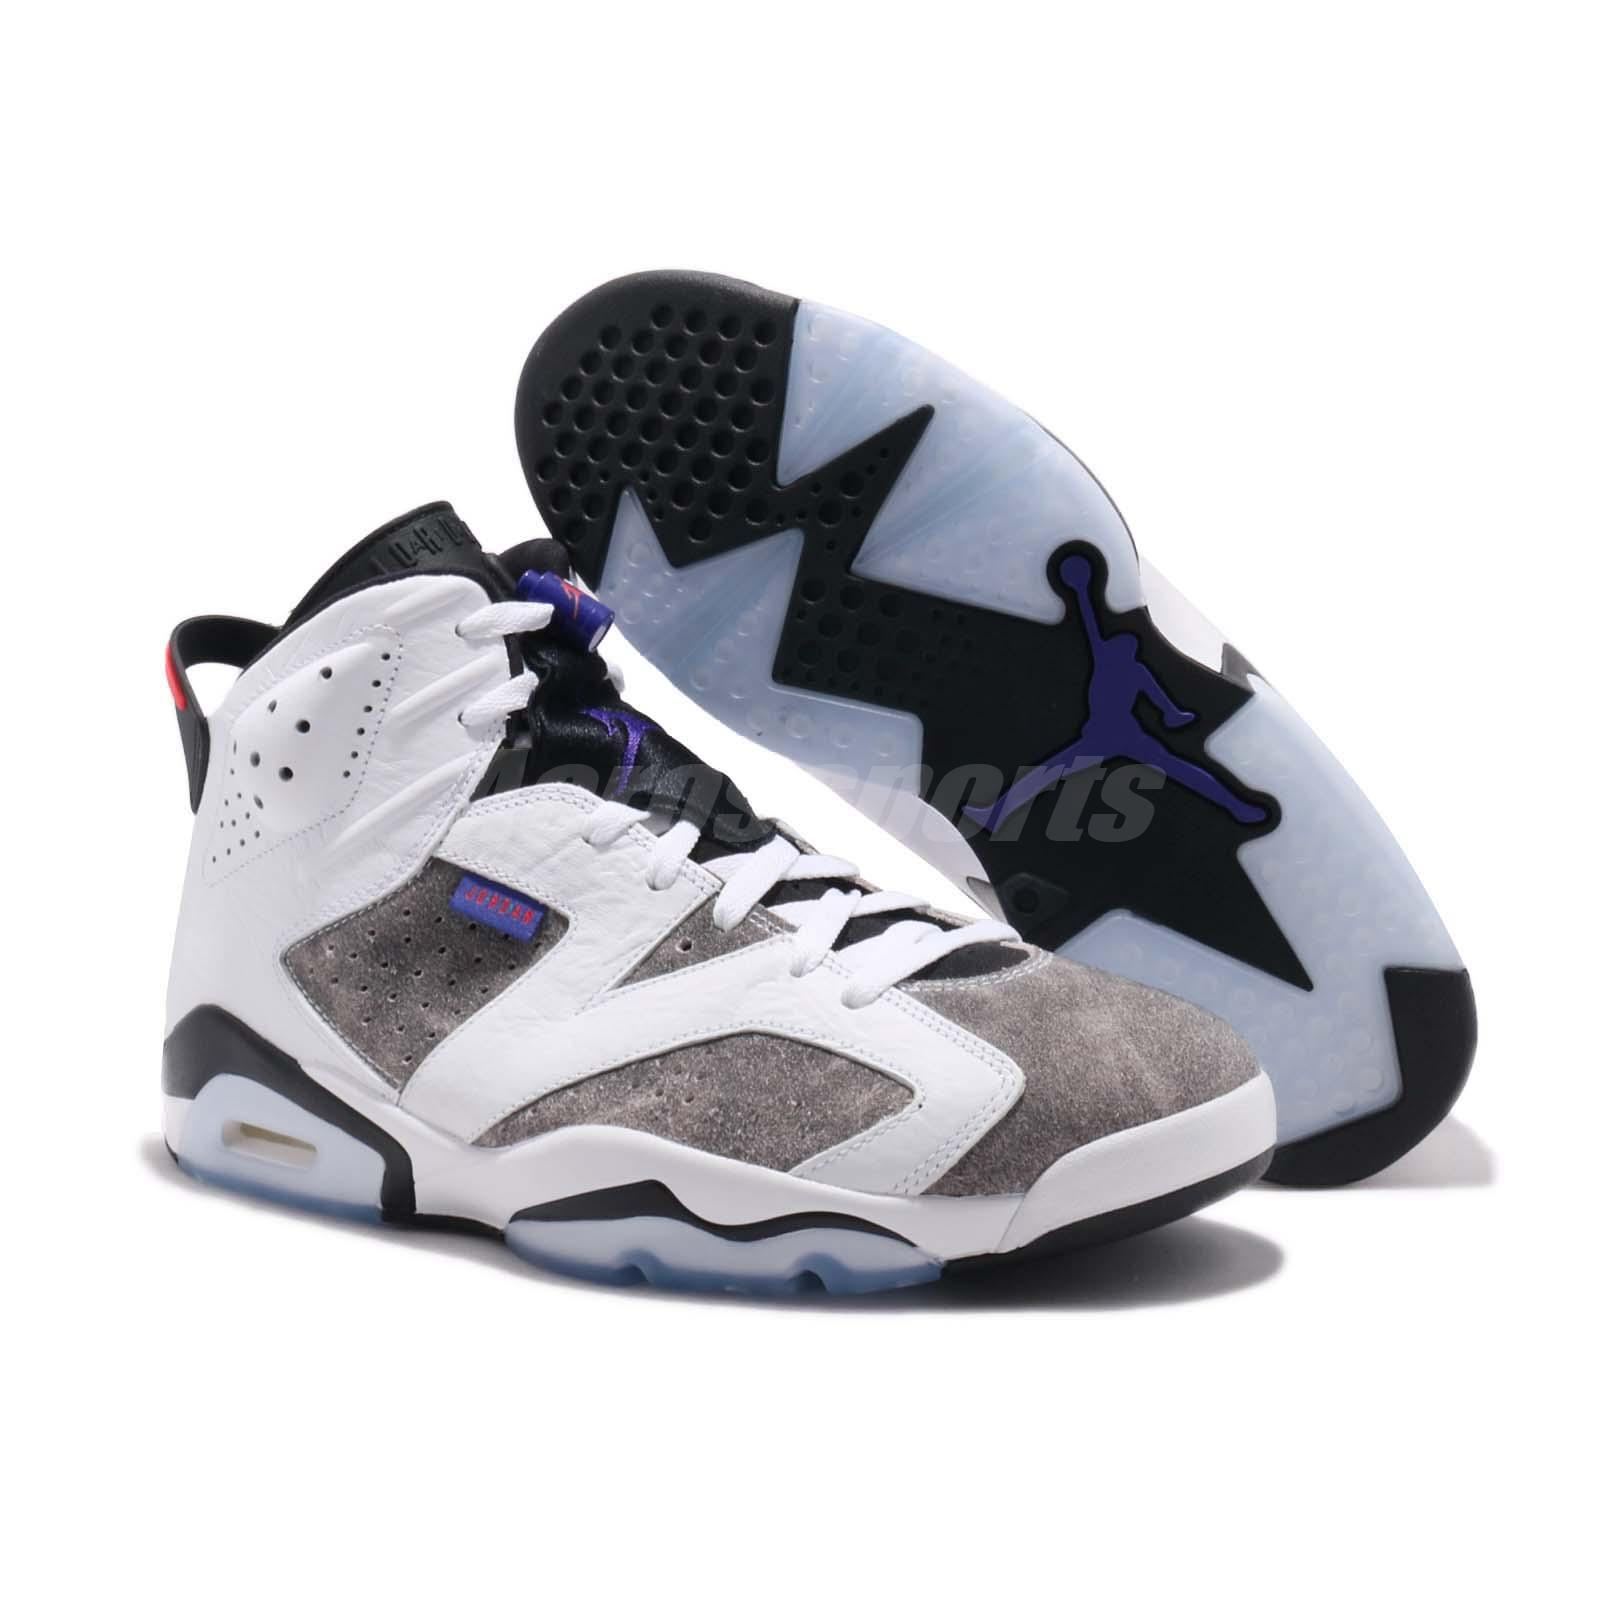 best website 9ea14 a270c Nike Air Jordan 6 Retro VI AJ6 Flint White Infrared 23 Men Shoes ...